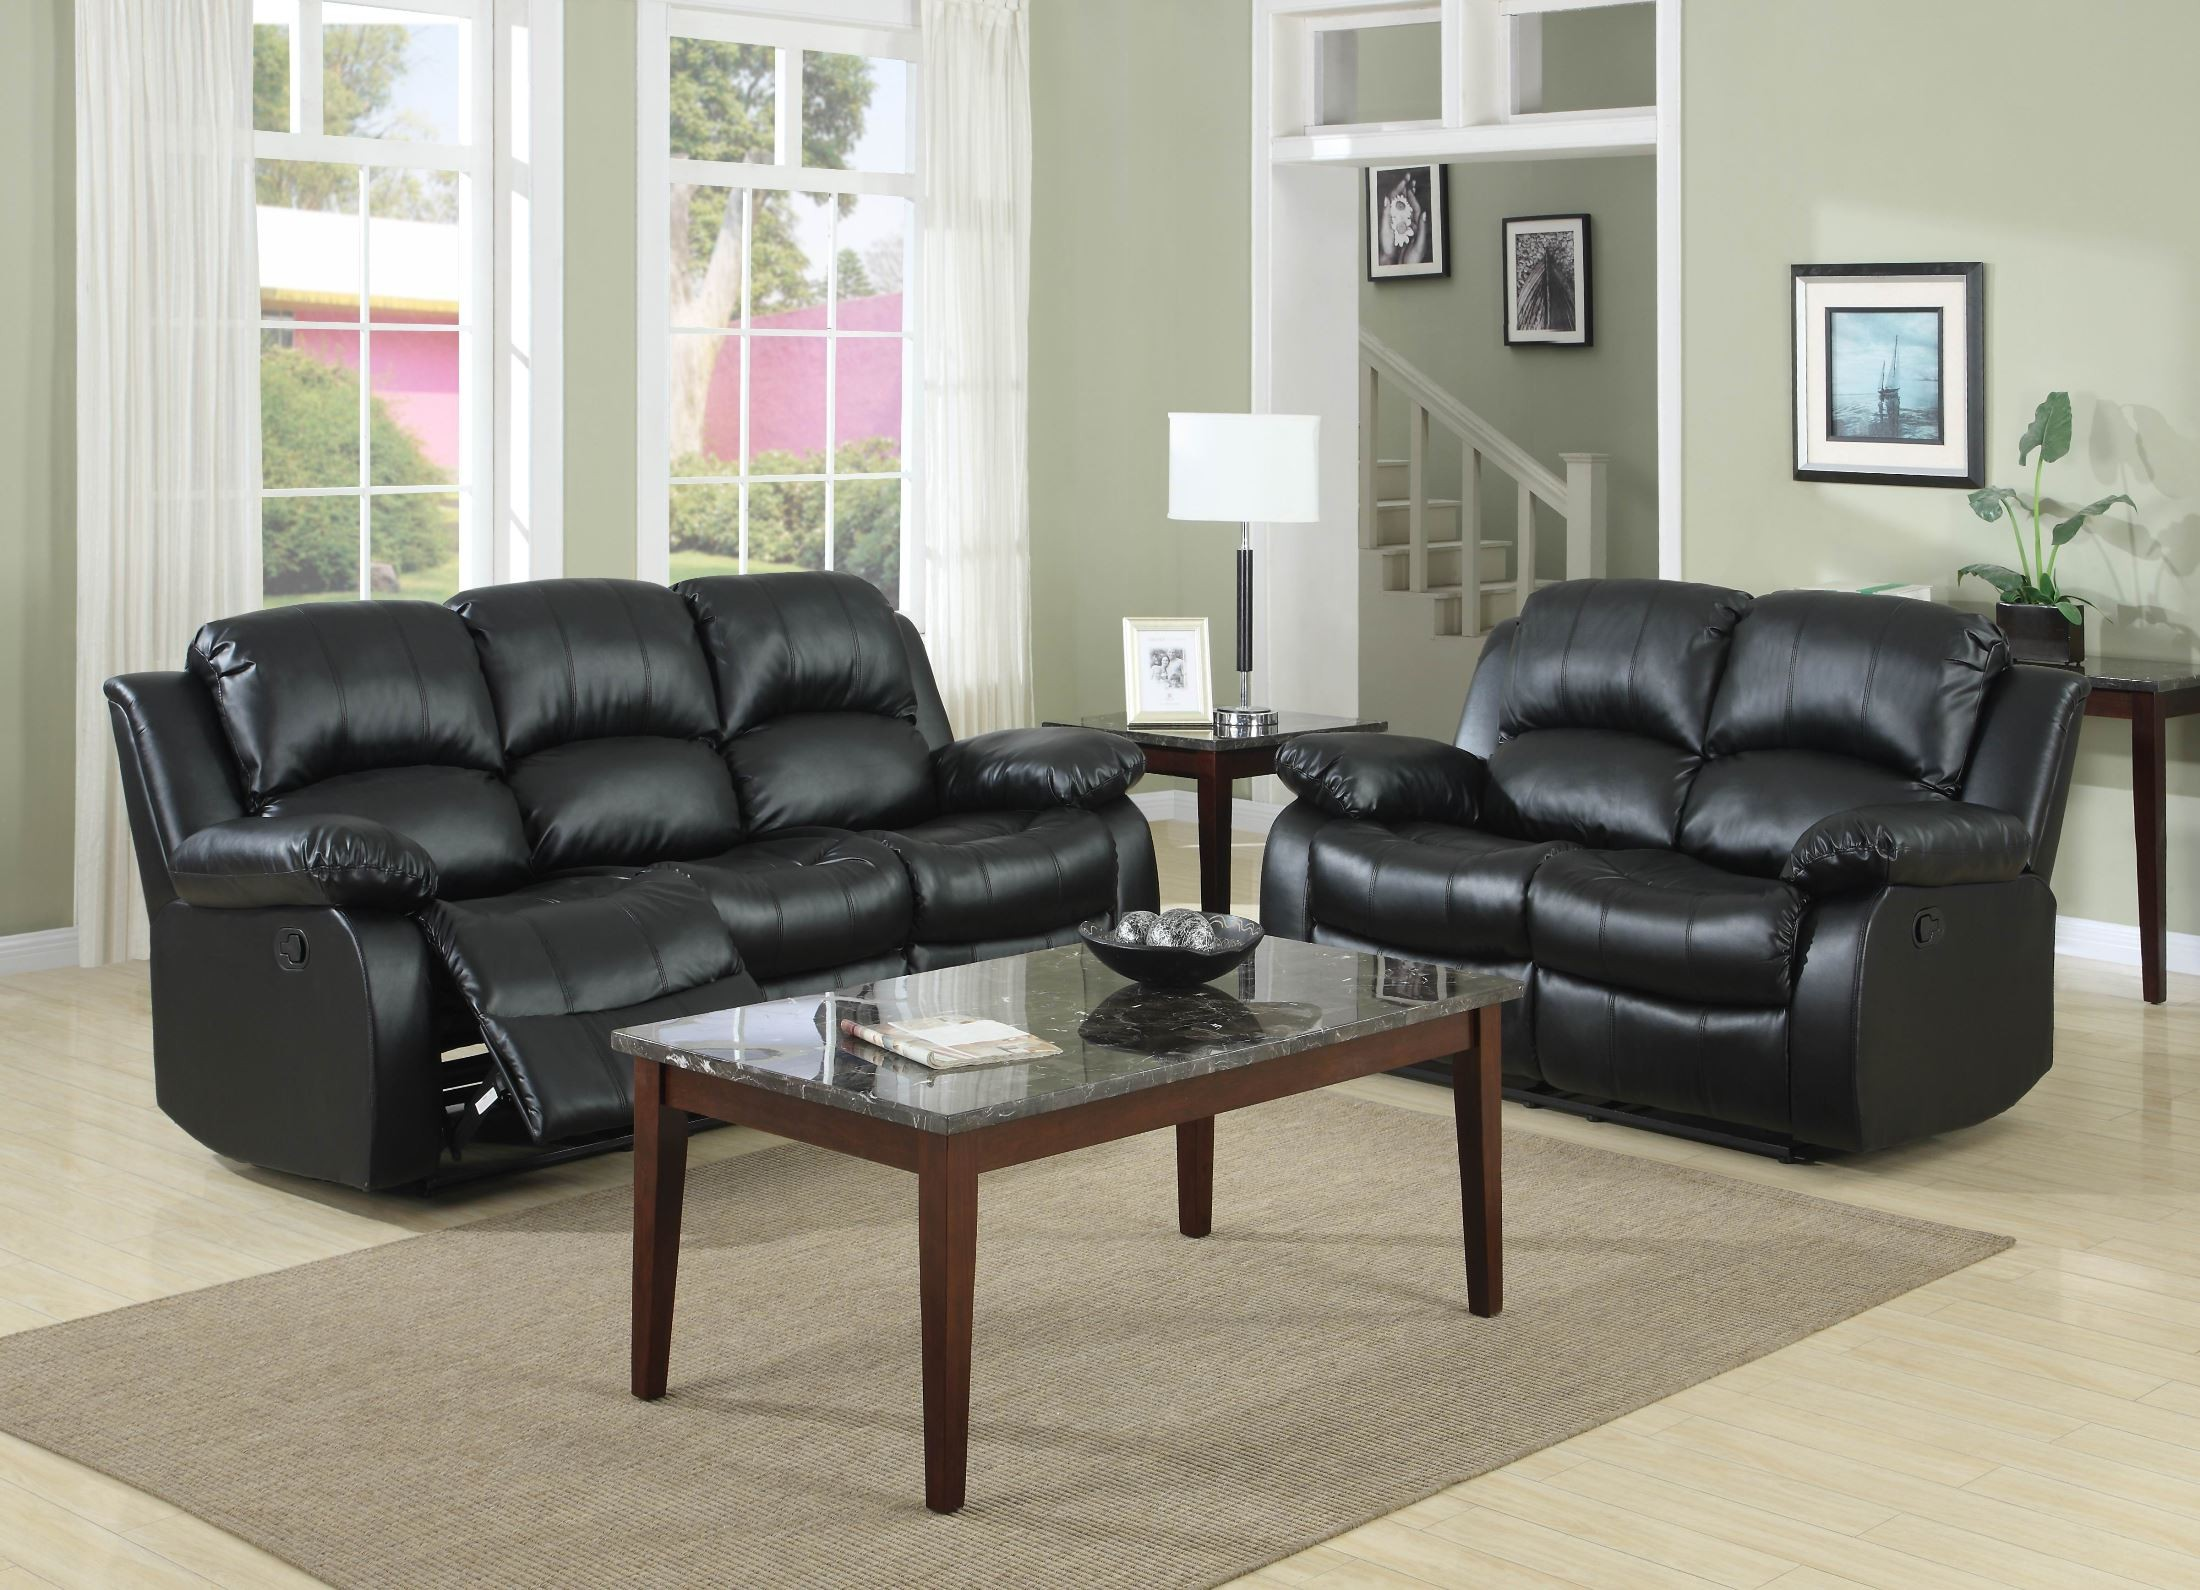 Cranley Black Power Double Reclining Living Room Set From Homelegance 9700blk 3pw Coleman